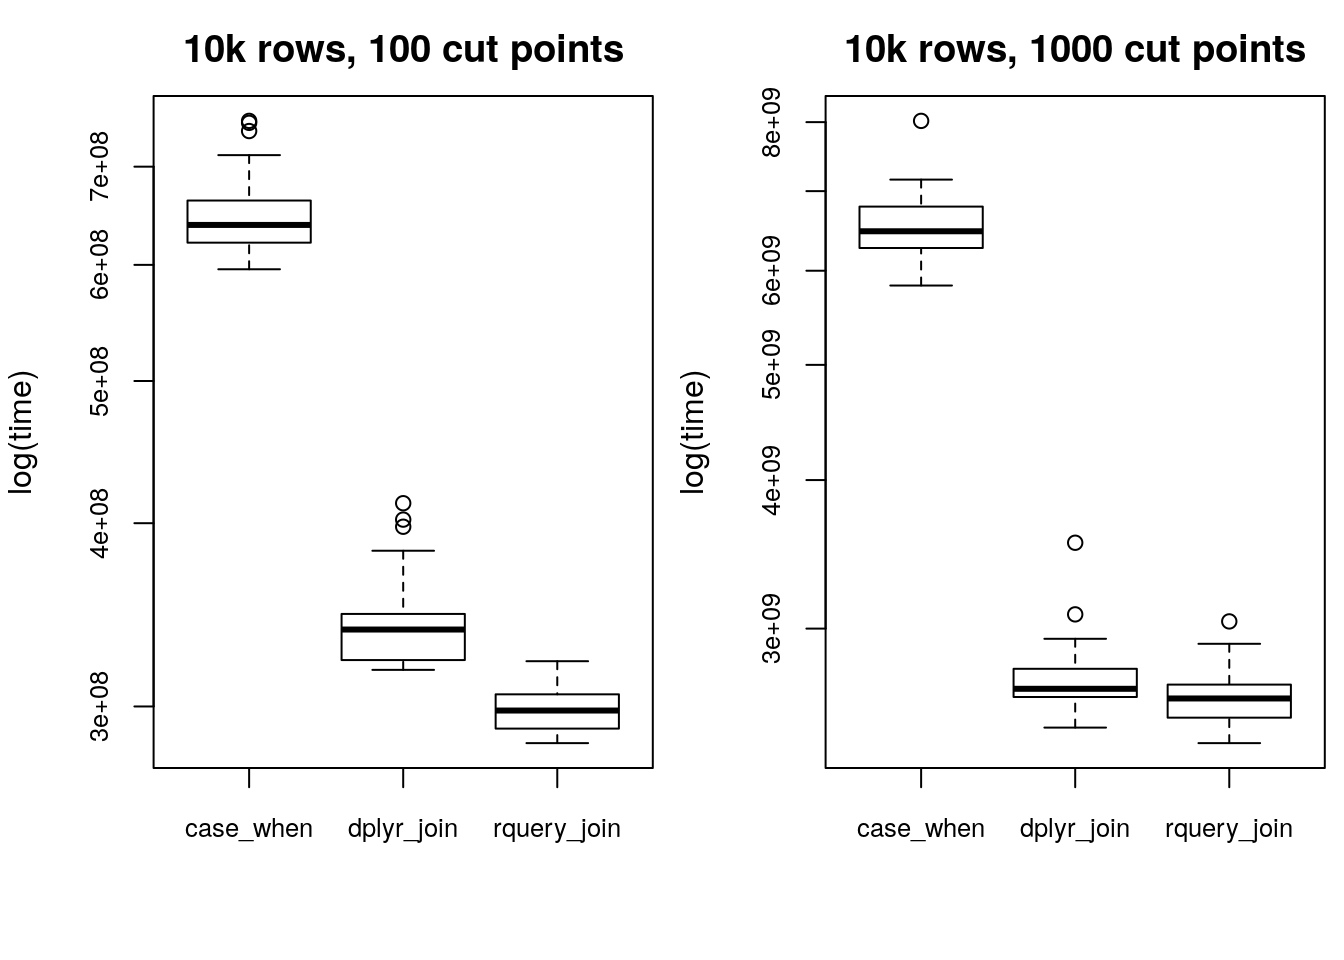 100 or 1000 cut points, 10,000 rows